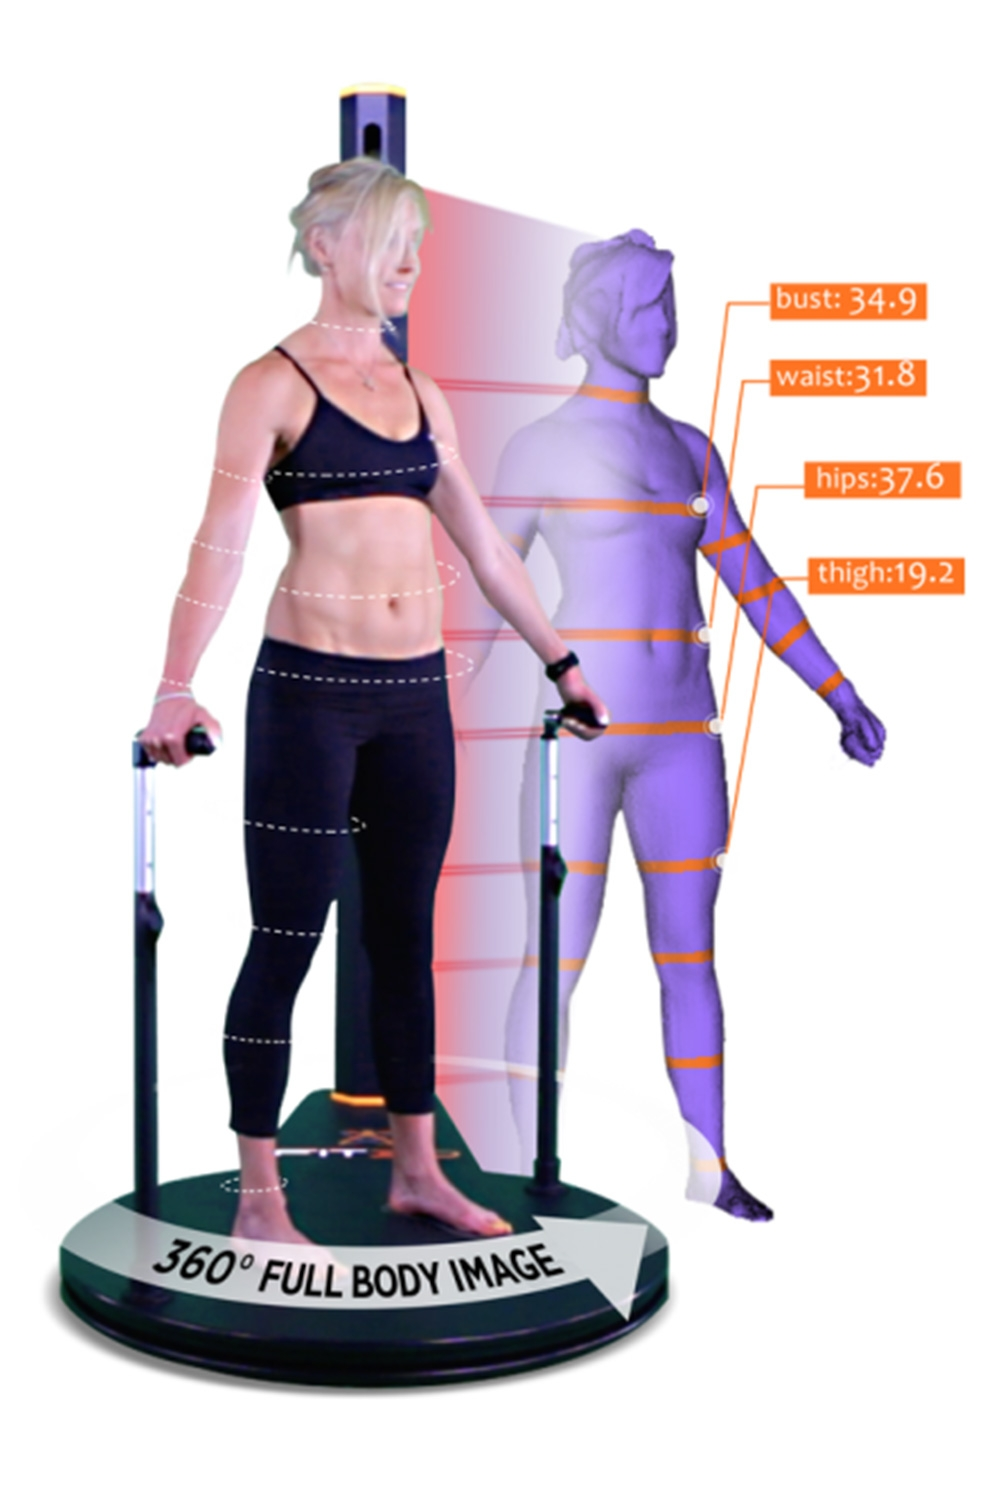 Fit 3D Body Scan